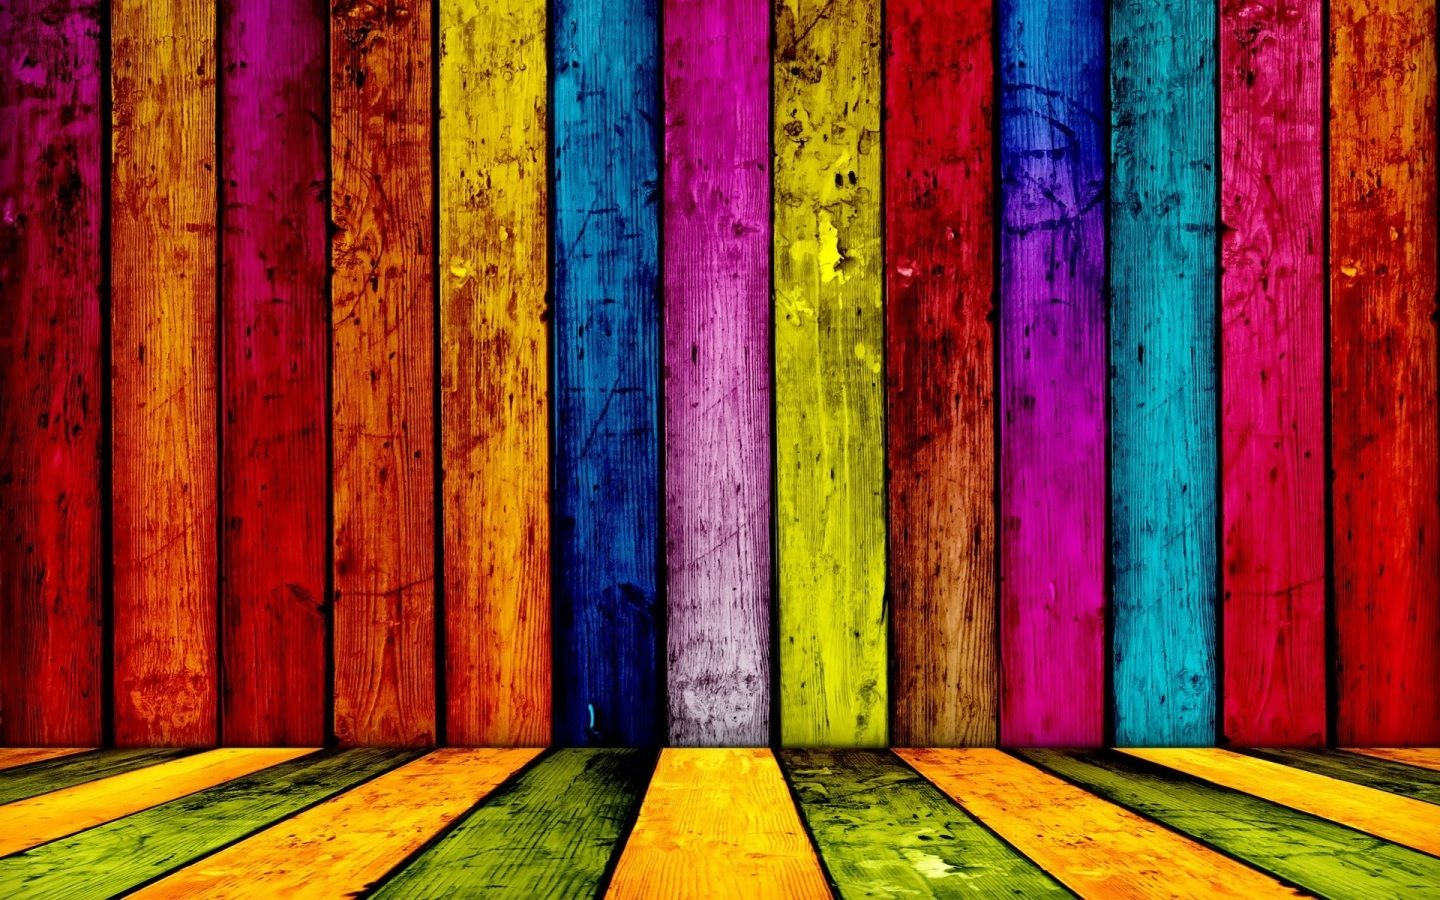 Colorful Wallpaper Colorful backgrounds, Painting